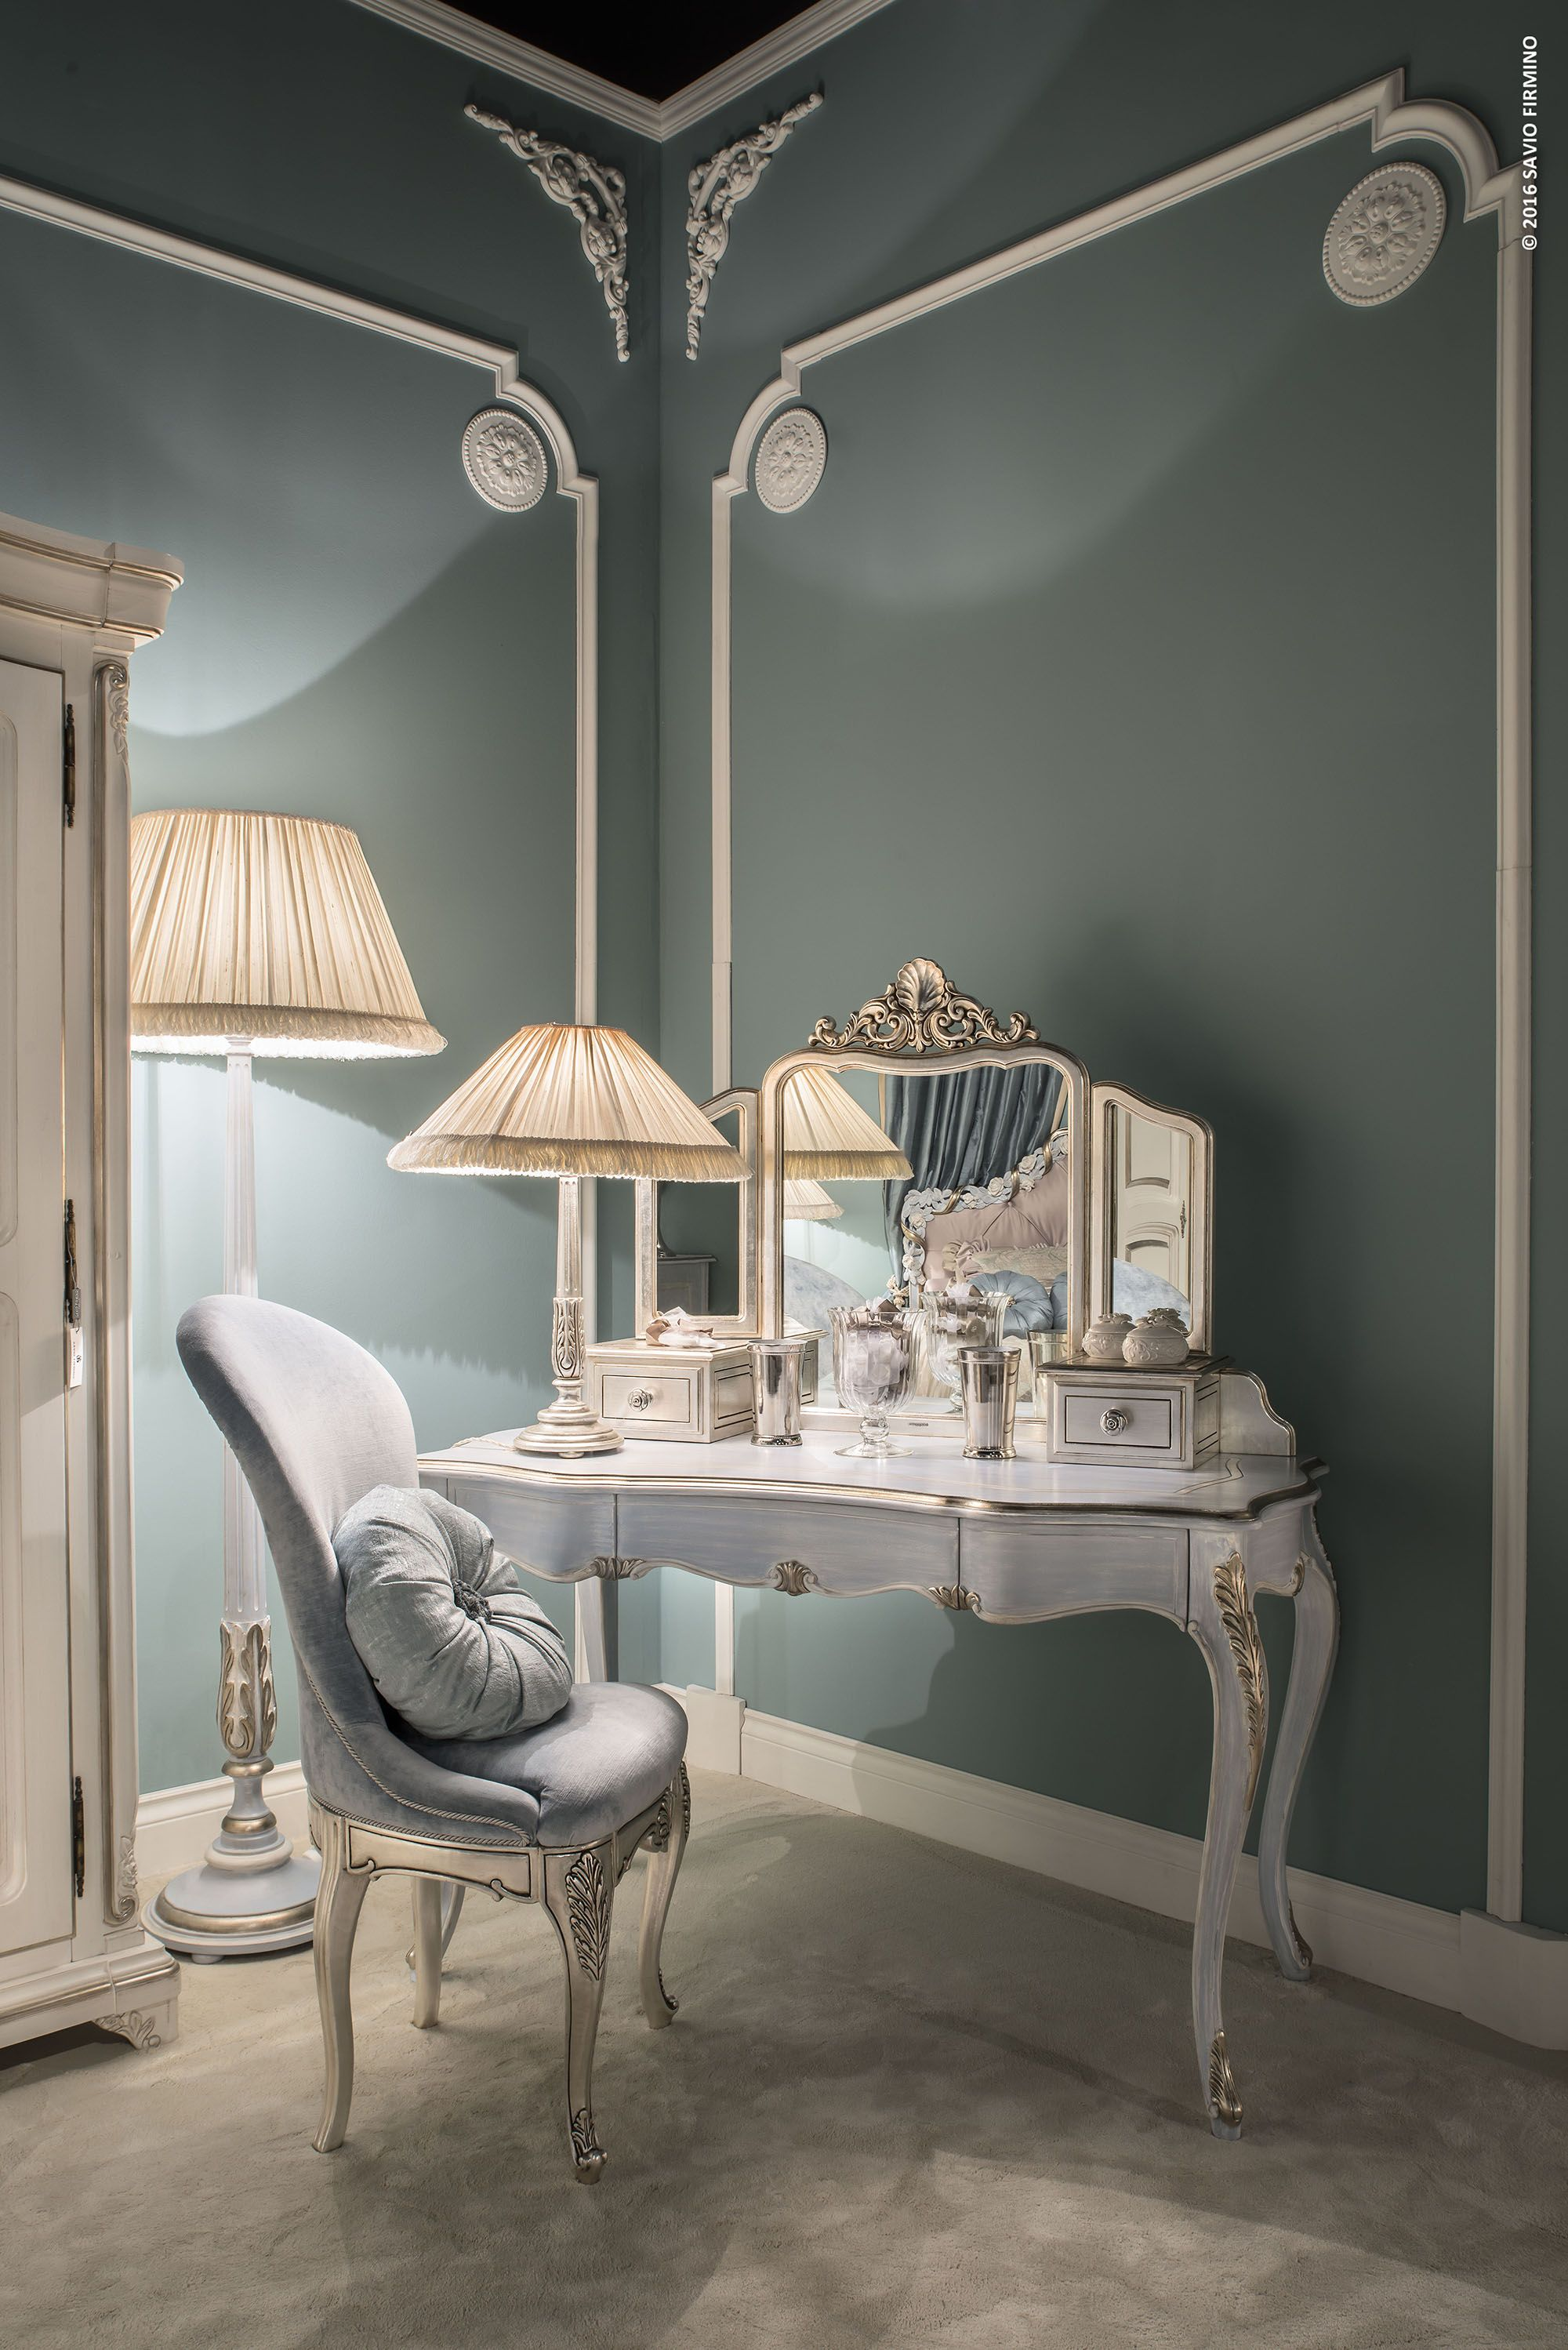 Precious Details And Delicate Colours For The Feminine Bedroom By Savio Firmino Savio Firmino